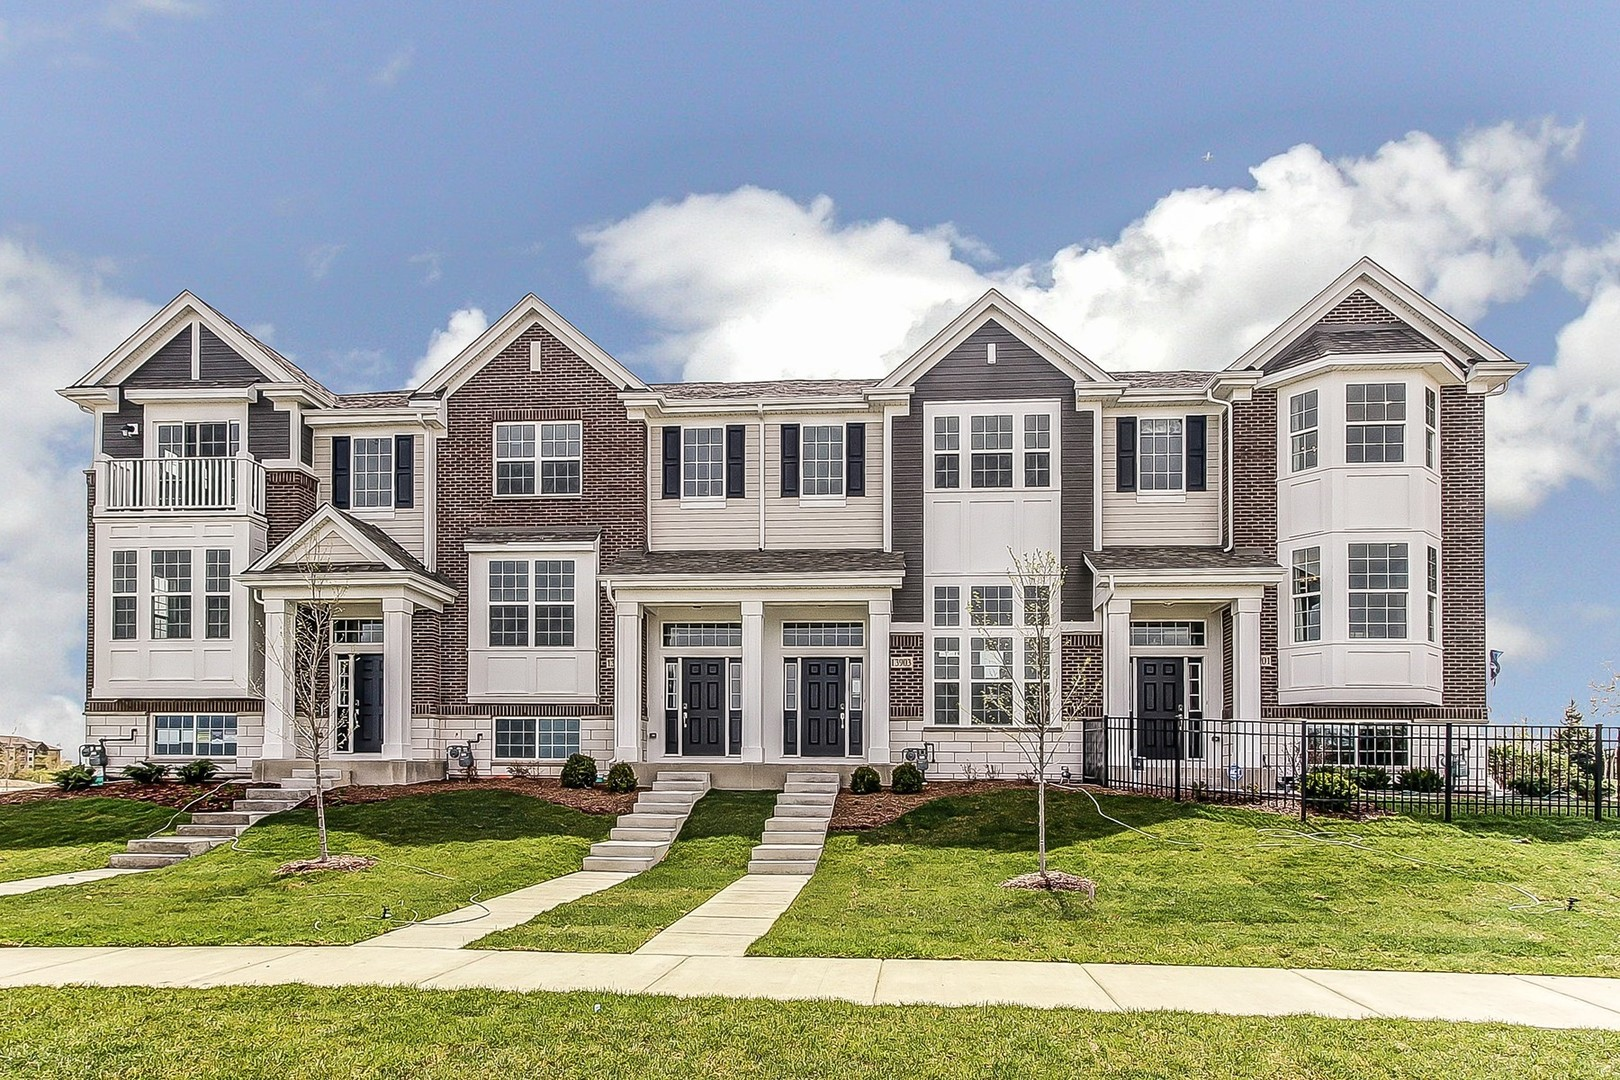 13903 S Belmont #20.03 Drive, Homer Glen in Will County, IL 60491 Home for Sale